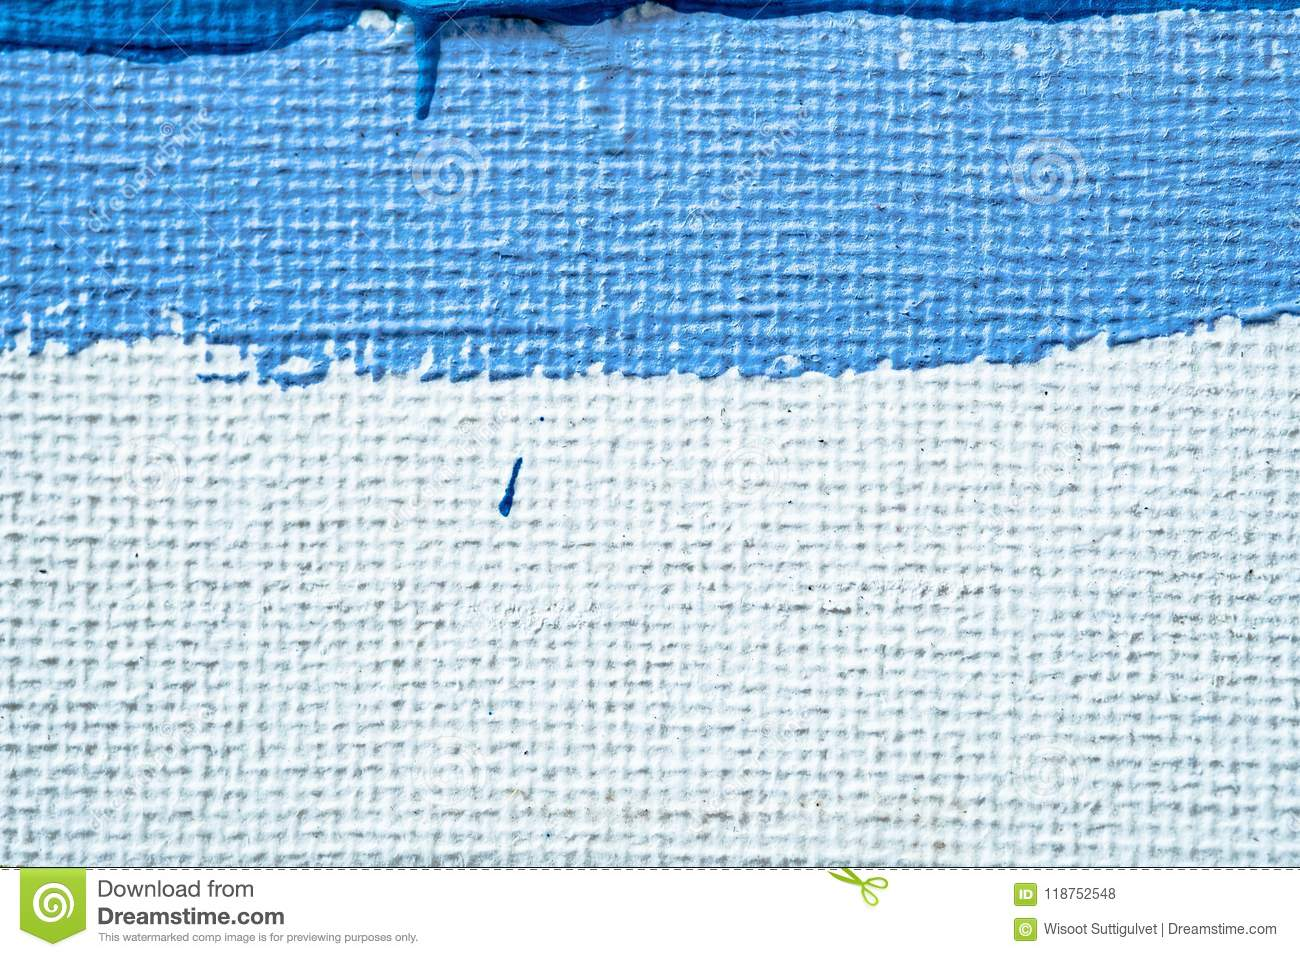 Blue abstract hand painted canvas background, texture. Colorful textured backdrop